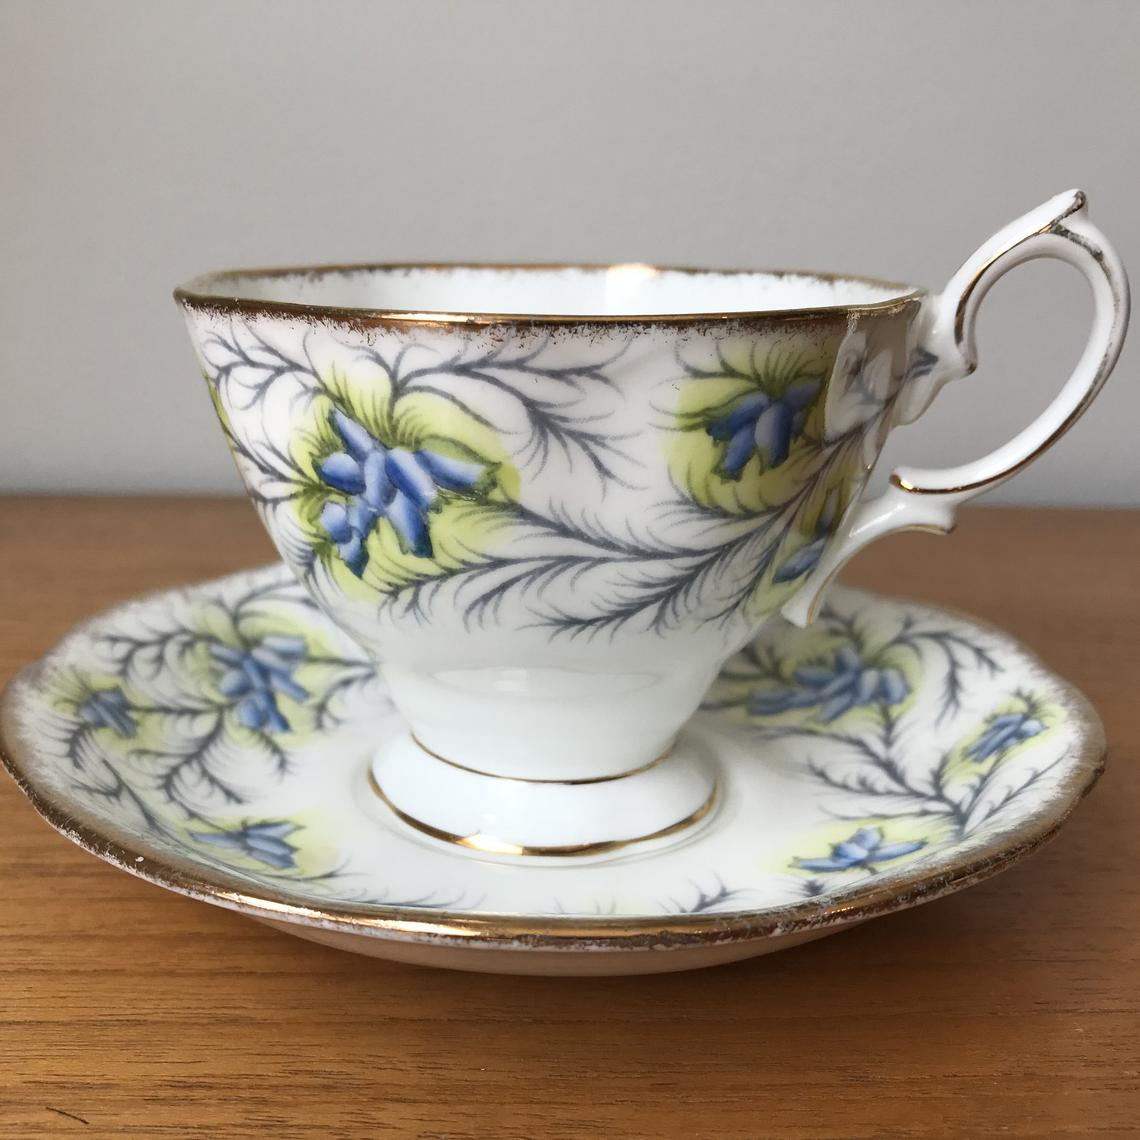 "Bone China Tea Cup and Saucer, Royal Albert ""Heather Bell"" Teacup and Saucer, Blue Flowers 1940s"